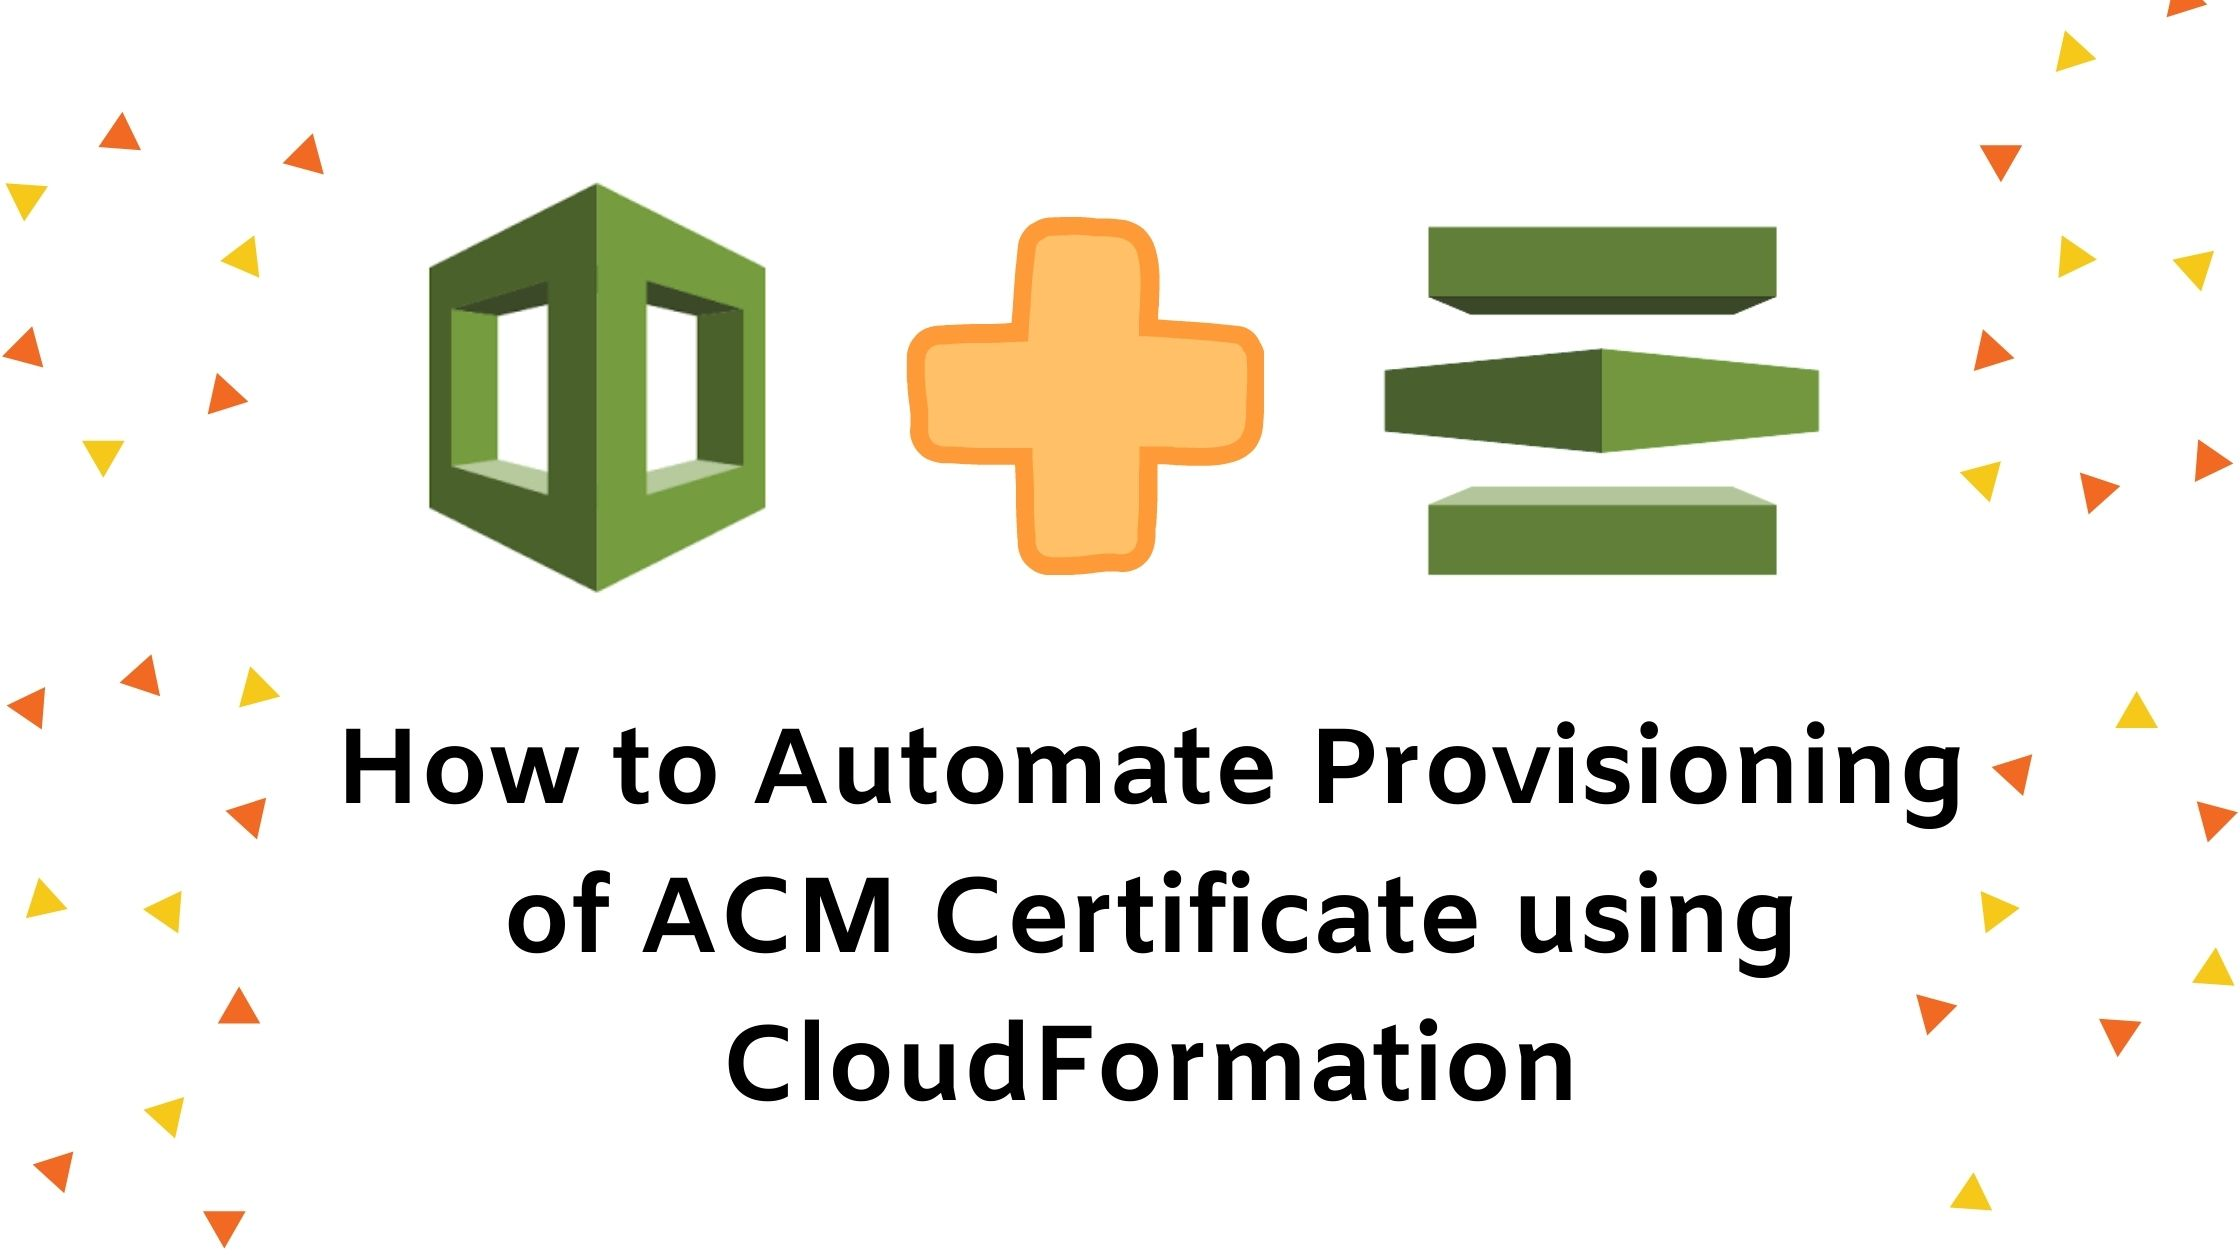 How to Automate Provisioning of ACM Certificate using CloudFormation